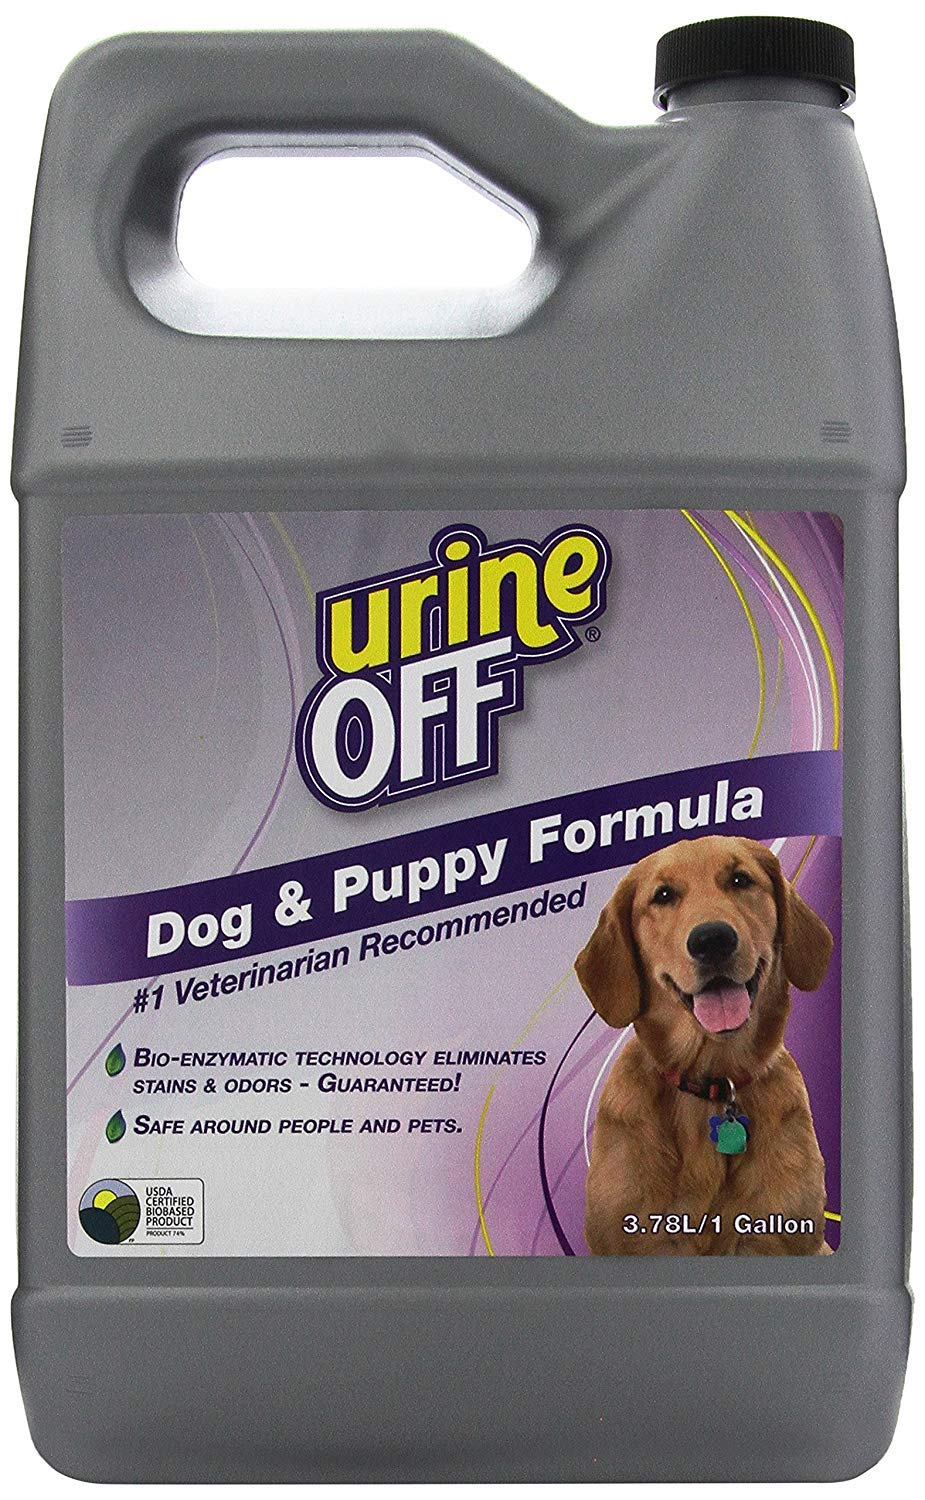 Urine Off Odor and Stain Remover Dog Formula, 1 Gallon by urineOFF